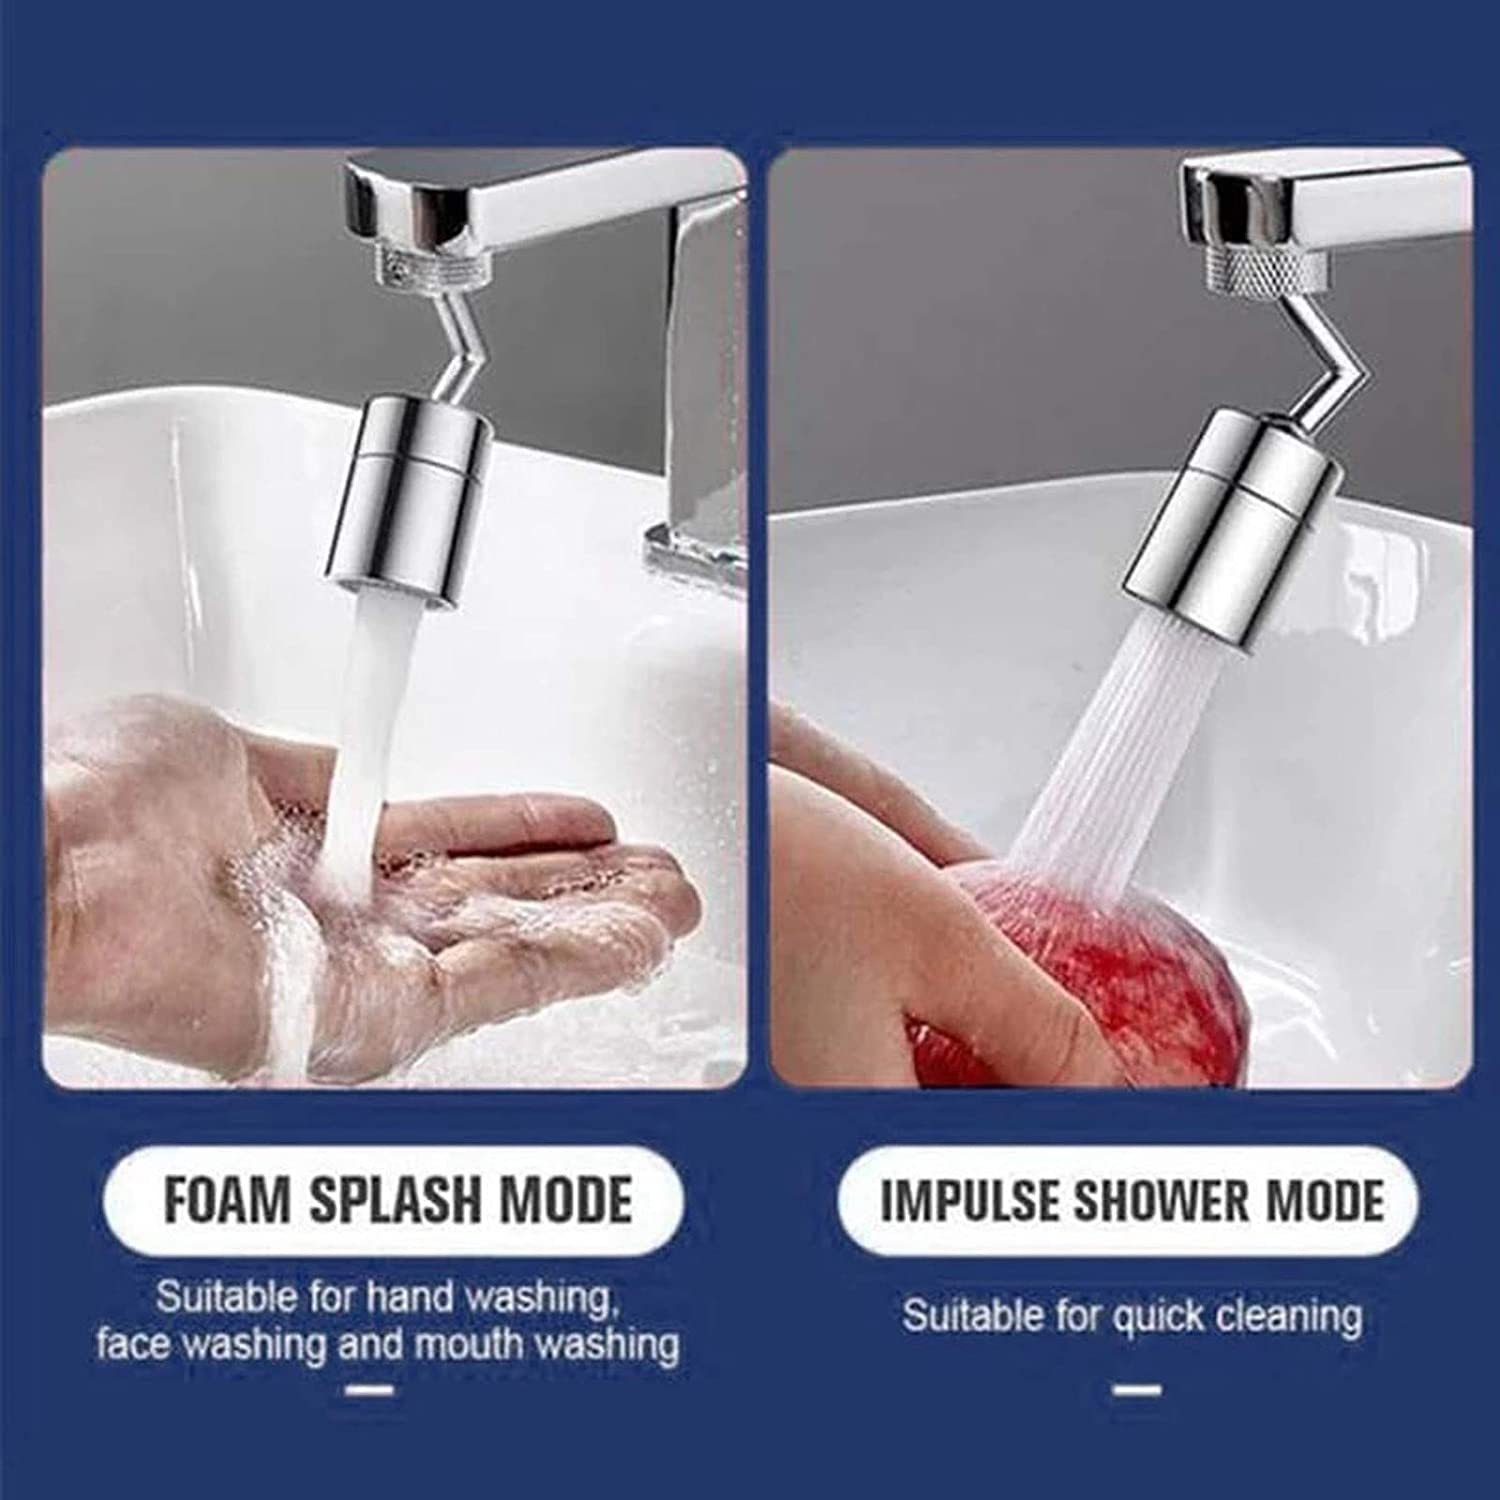 720 Degree Swivel Sink Faucet Aerator for Kitchen Bathroom | Faucet, Sink  faucets, Faucet aerators